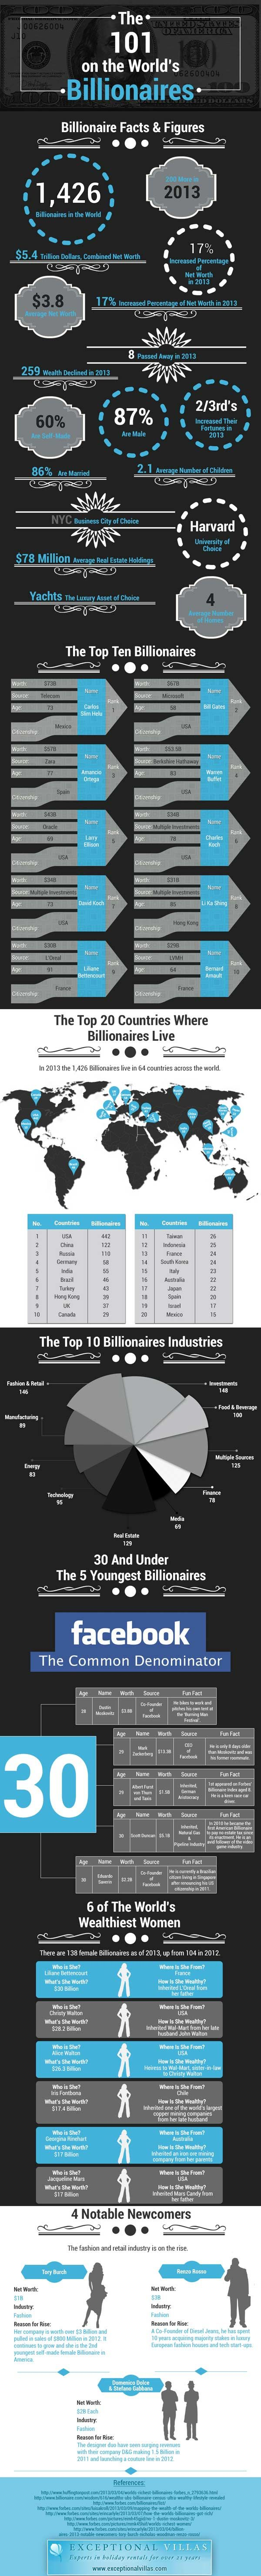 Everything You Need To Know About the World's Top Billionaires